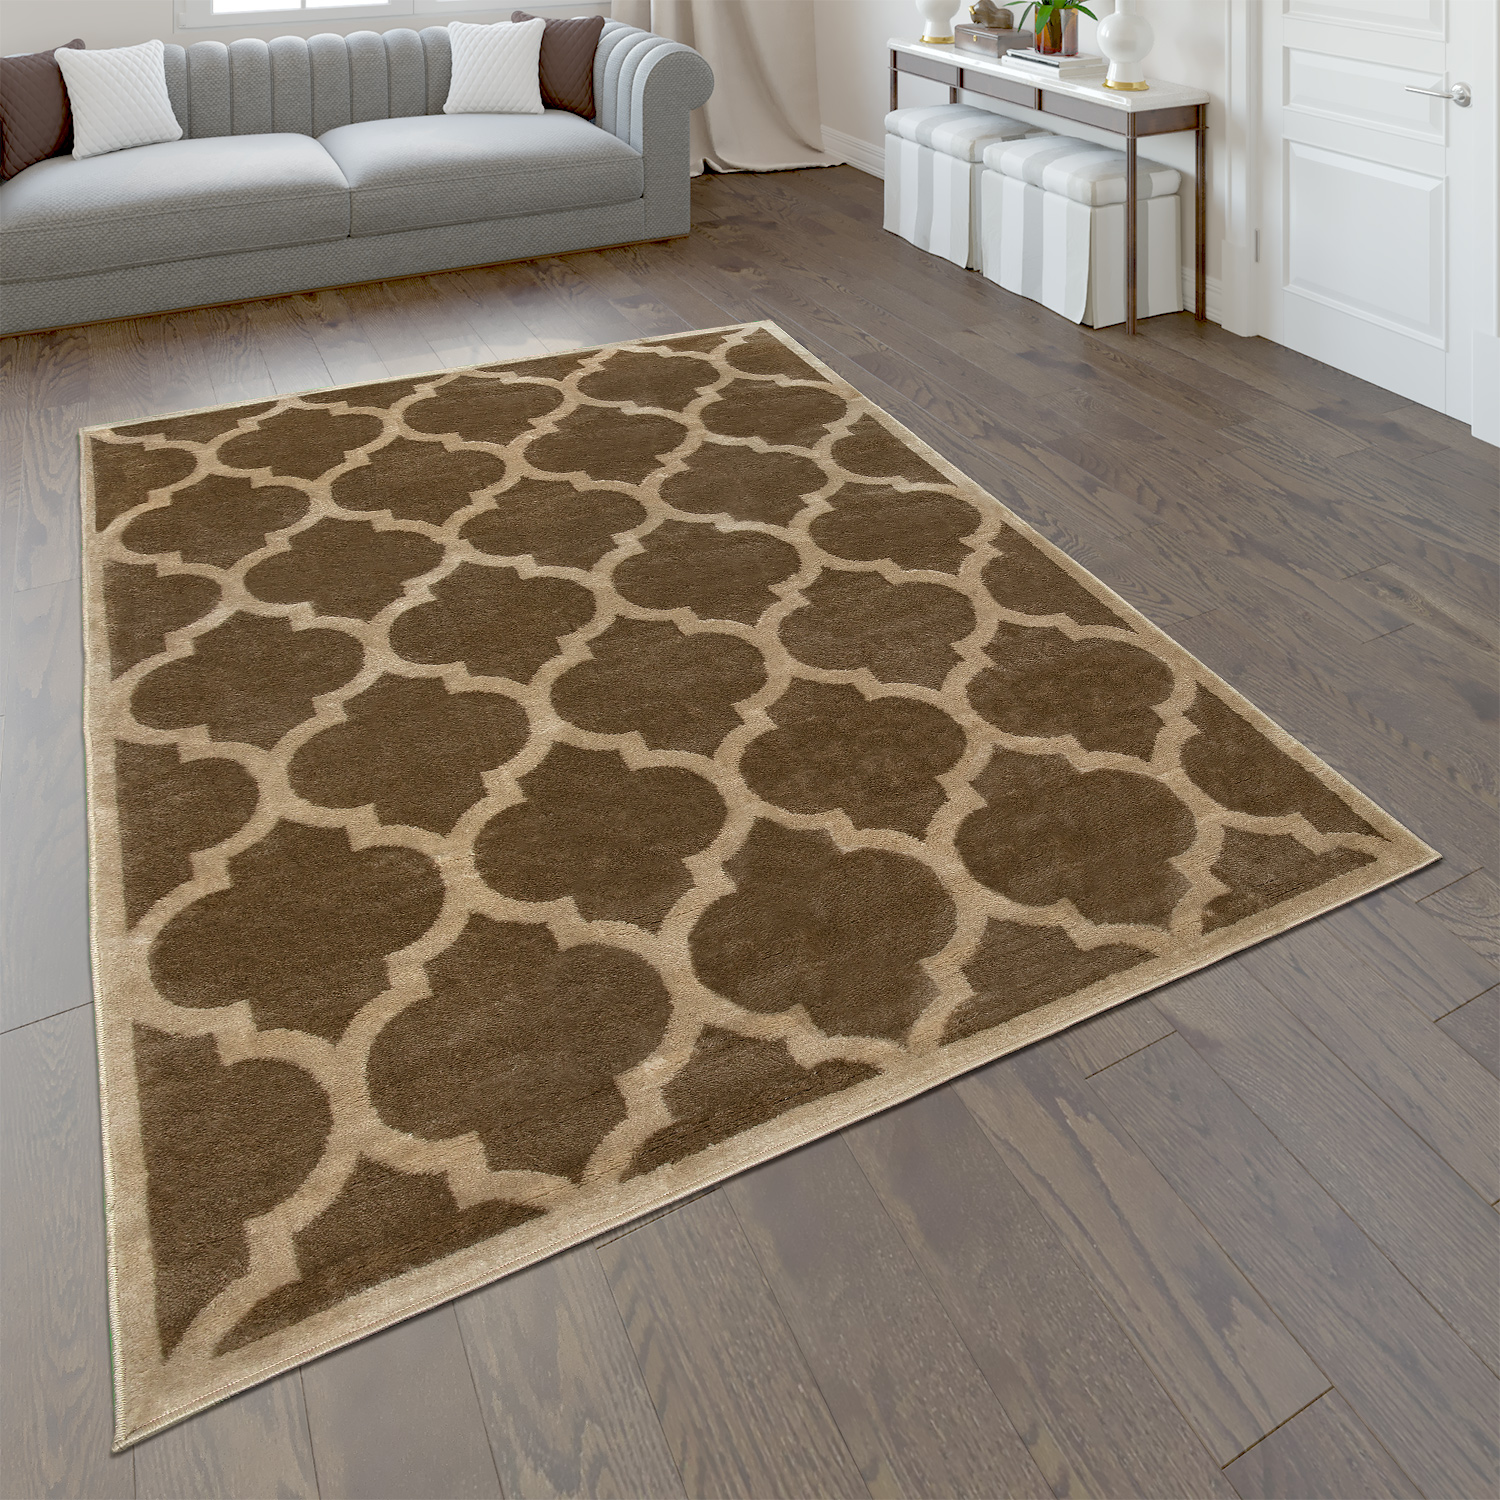 tapis de cr ateur salon tapis tiss plat moderne tendance tapis brun beige tapis optique orientale. Black Bedroom Furniture Sets. Home Design Ideas